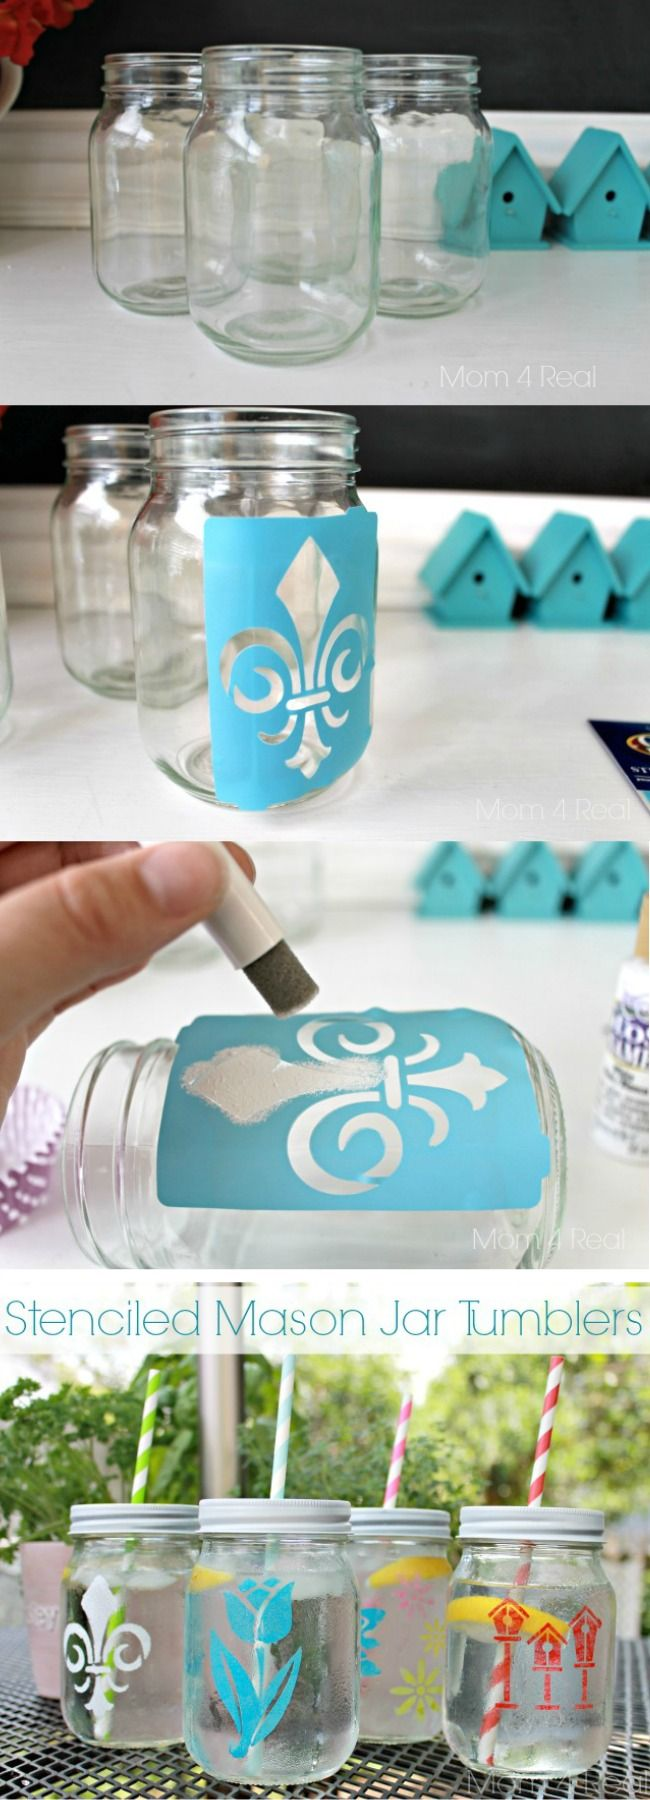 Stenciled Mason Jars - would be cute for food as well , stenciling in labels (pasta, rice, quinoa, etc)